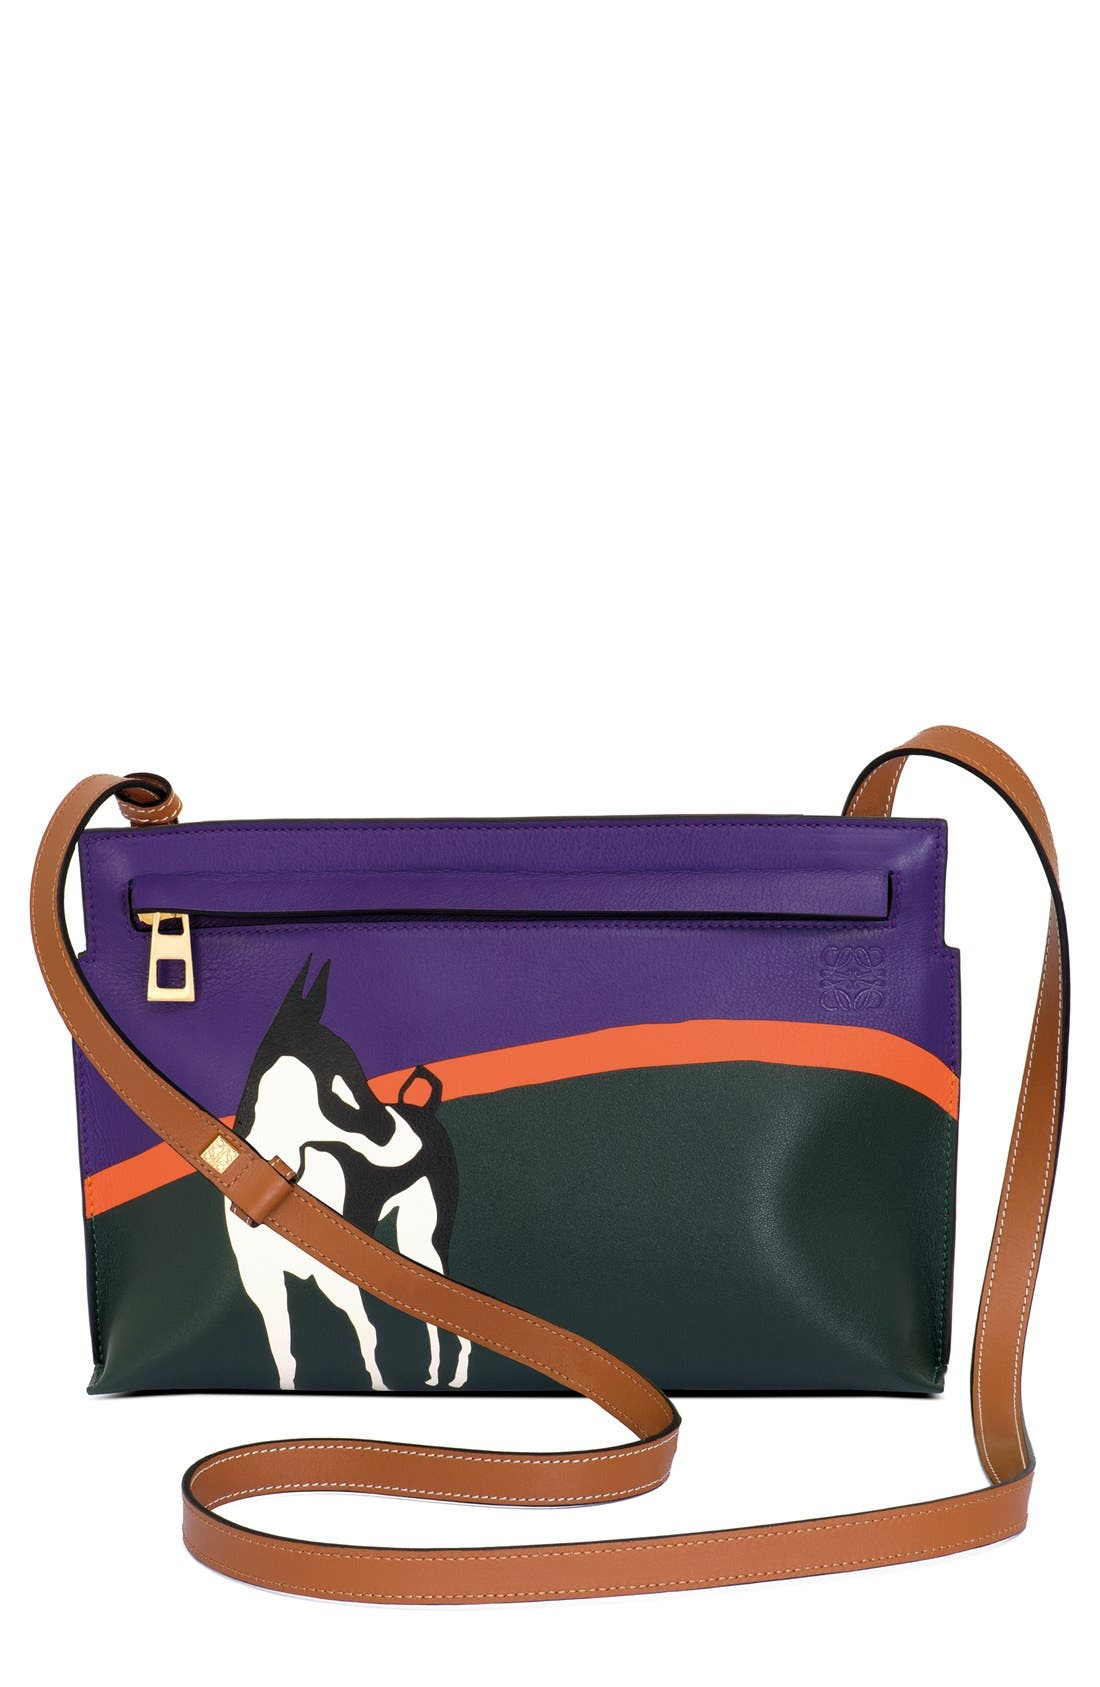 Alternate Image 1 Selected - Loewe 'Lost Dog - Medium T' Calfskin Leather Crossbody Pouch